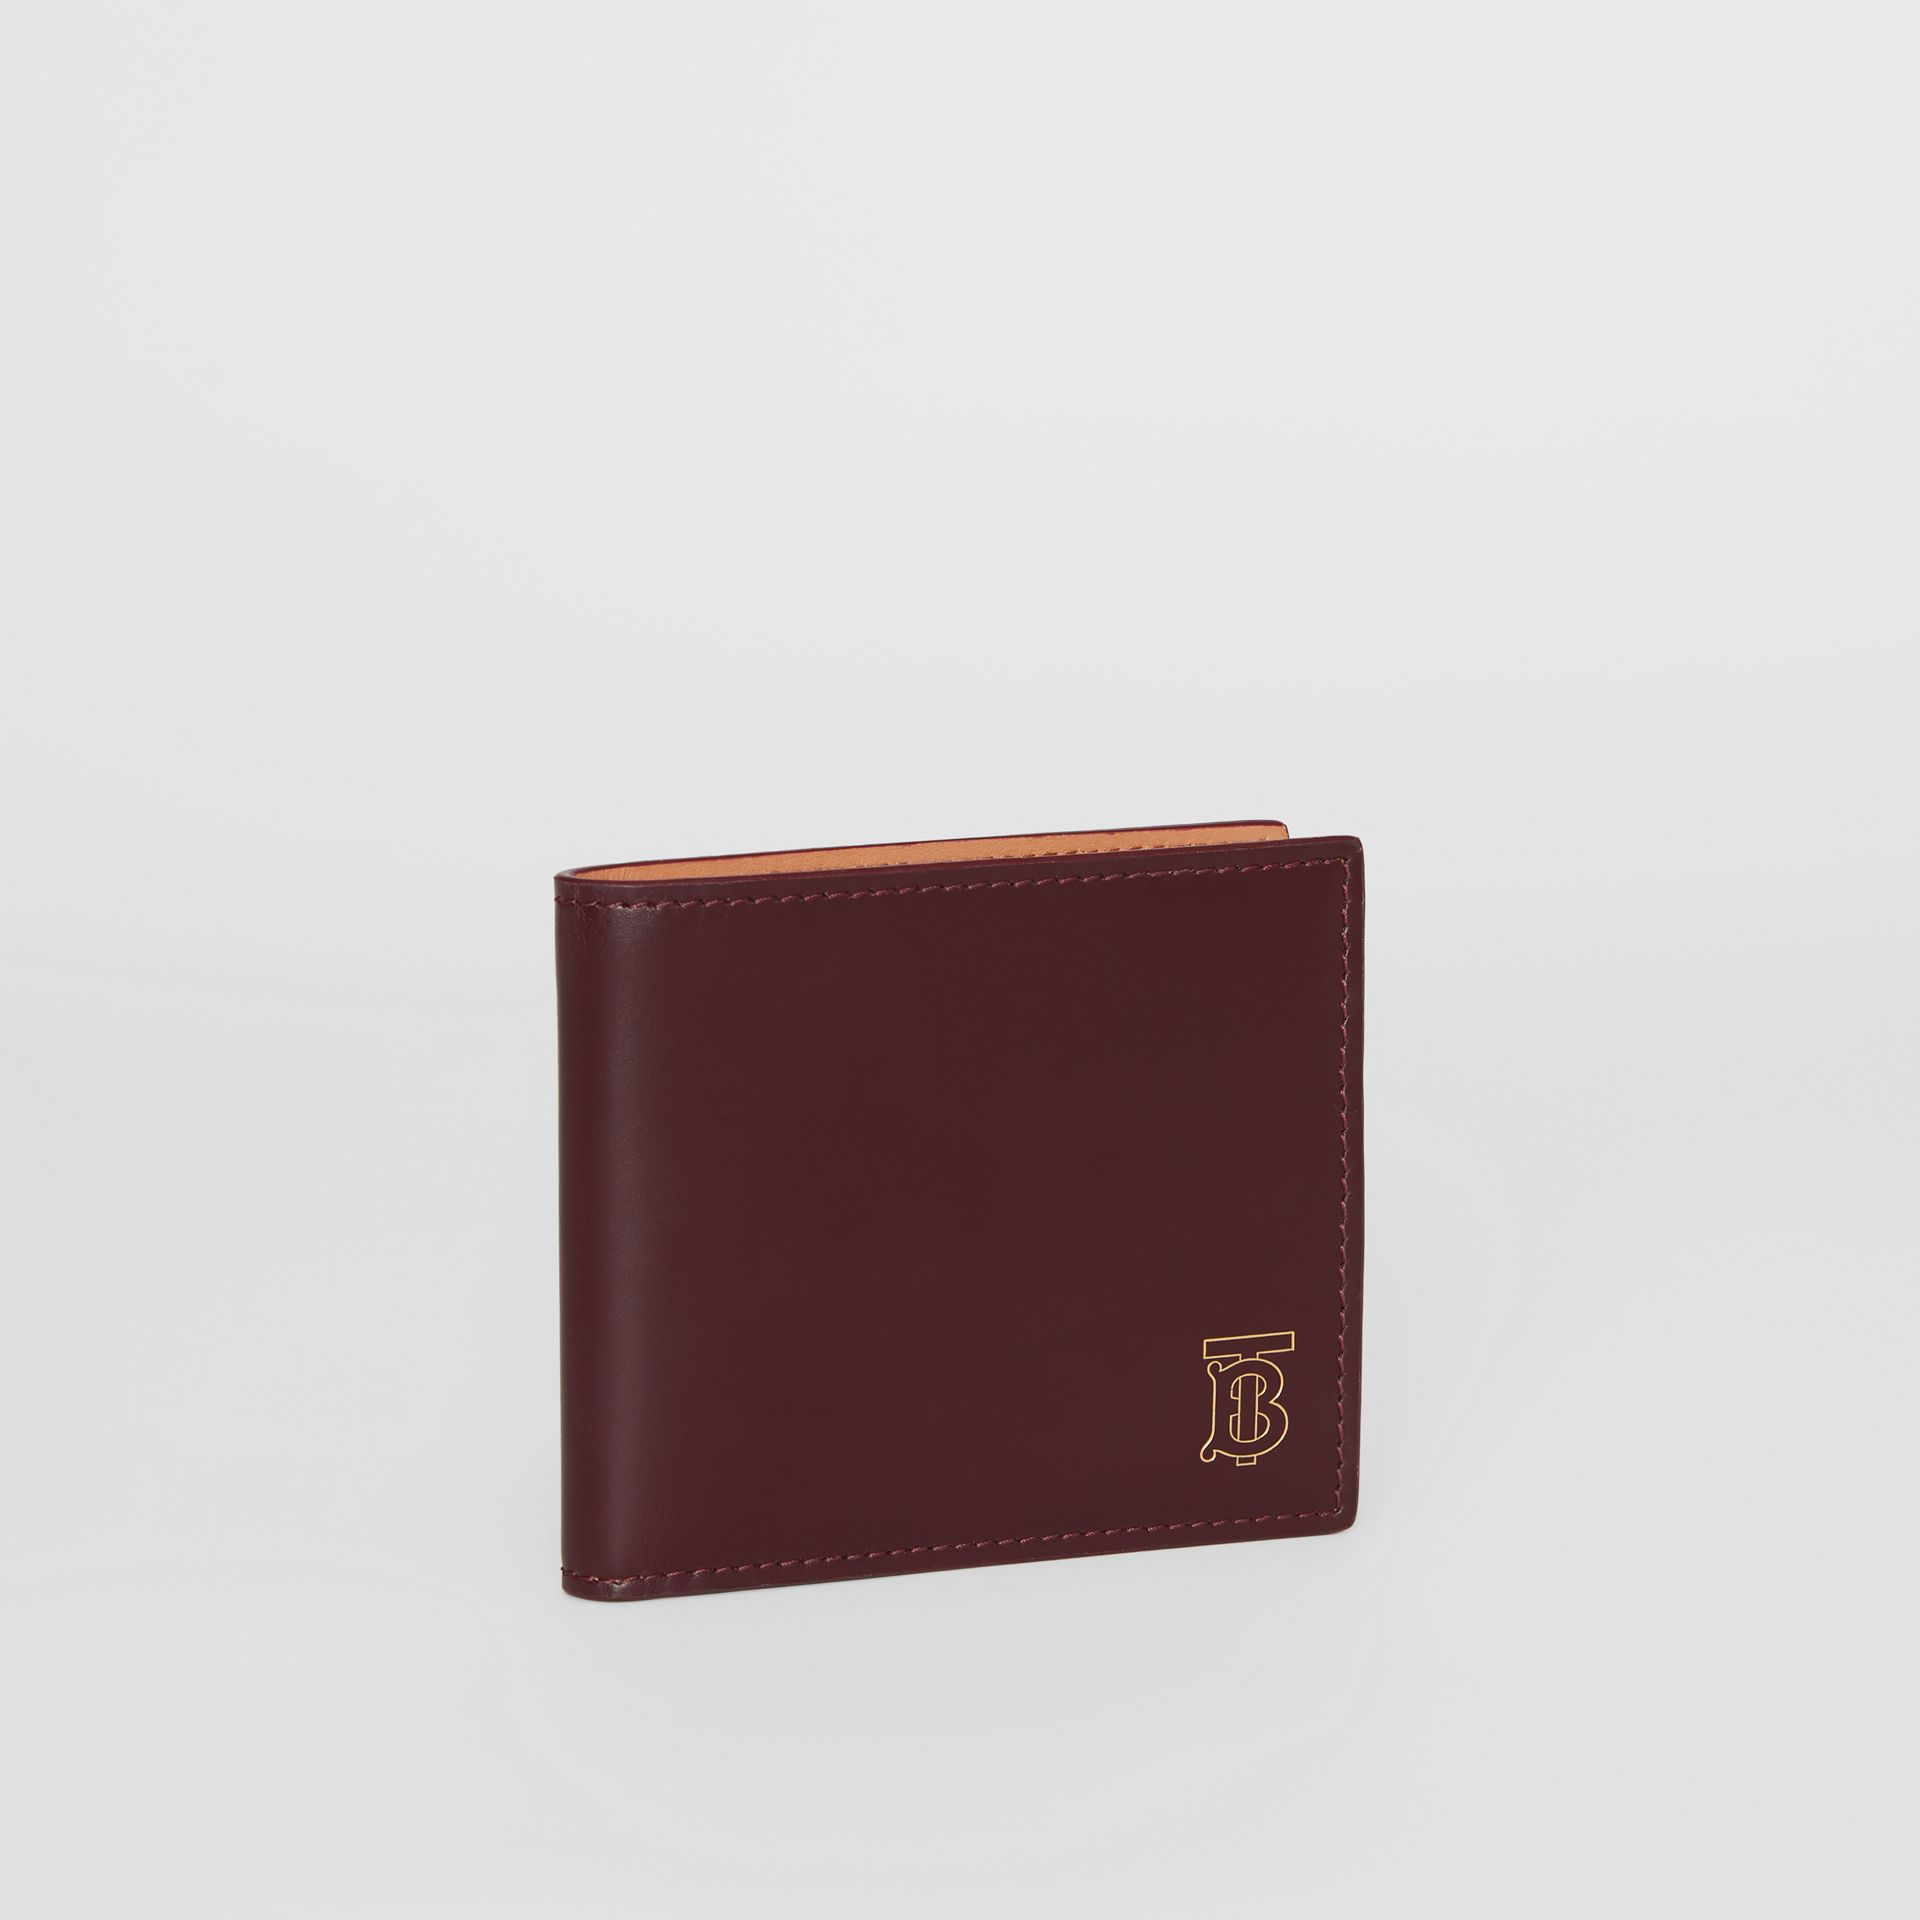 Portefeuille à rabat multidevise en cuir Monogram (Oxblood) | Burberry - photo de la galerie 3